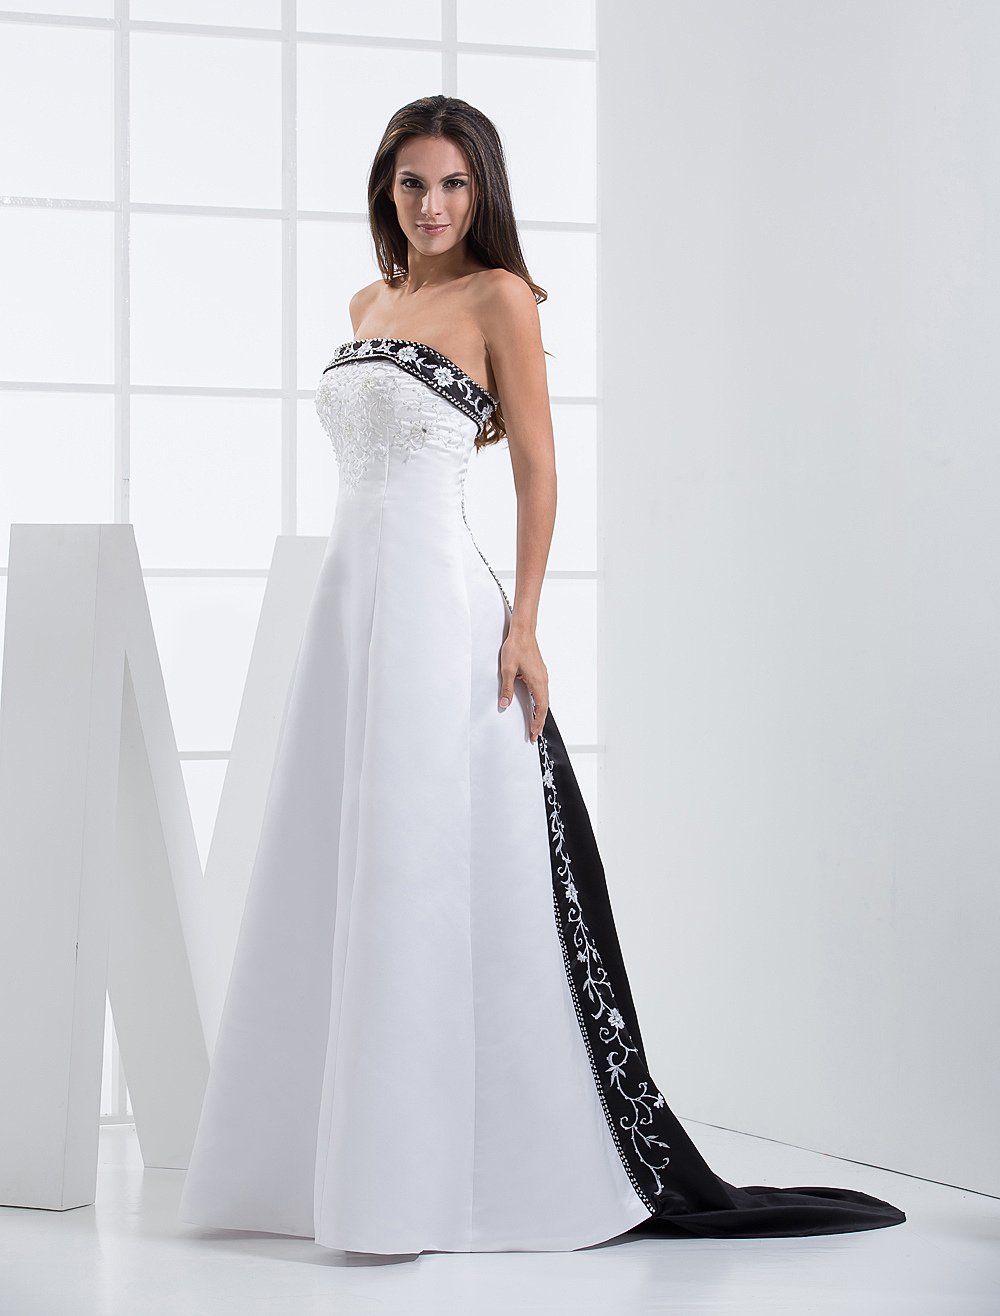 Strapless Wedding Dresses Lace Embroidered Bridal Gown Sweep Train Satin A Line Beading Colored Bridal Dress